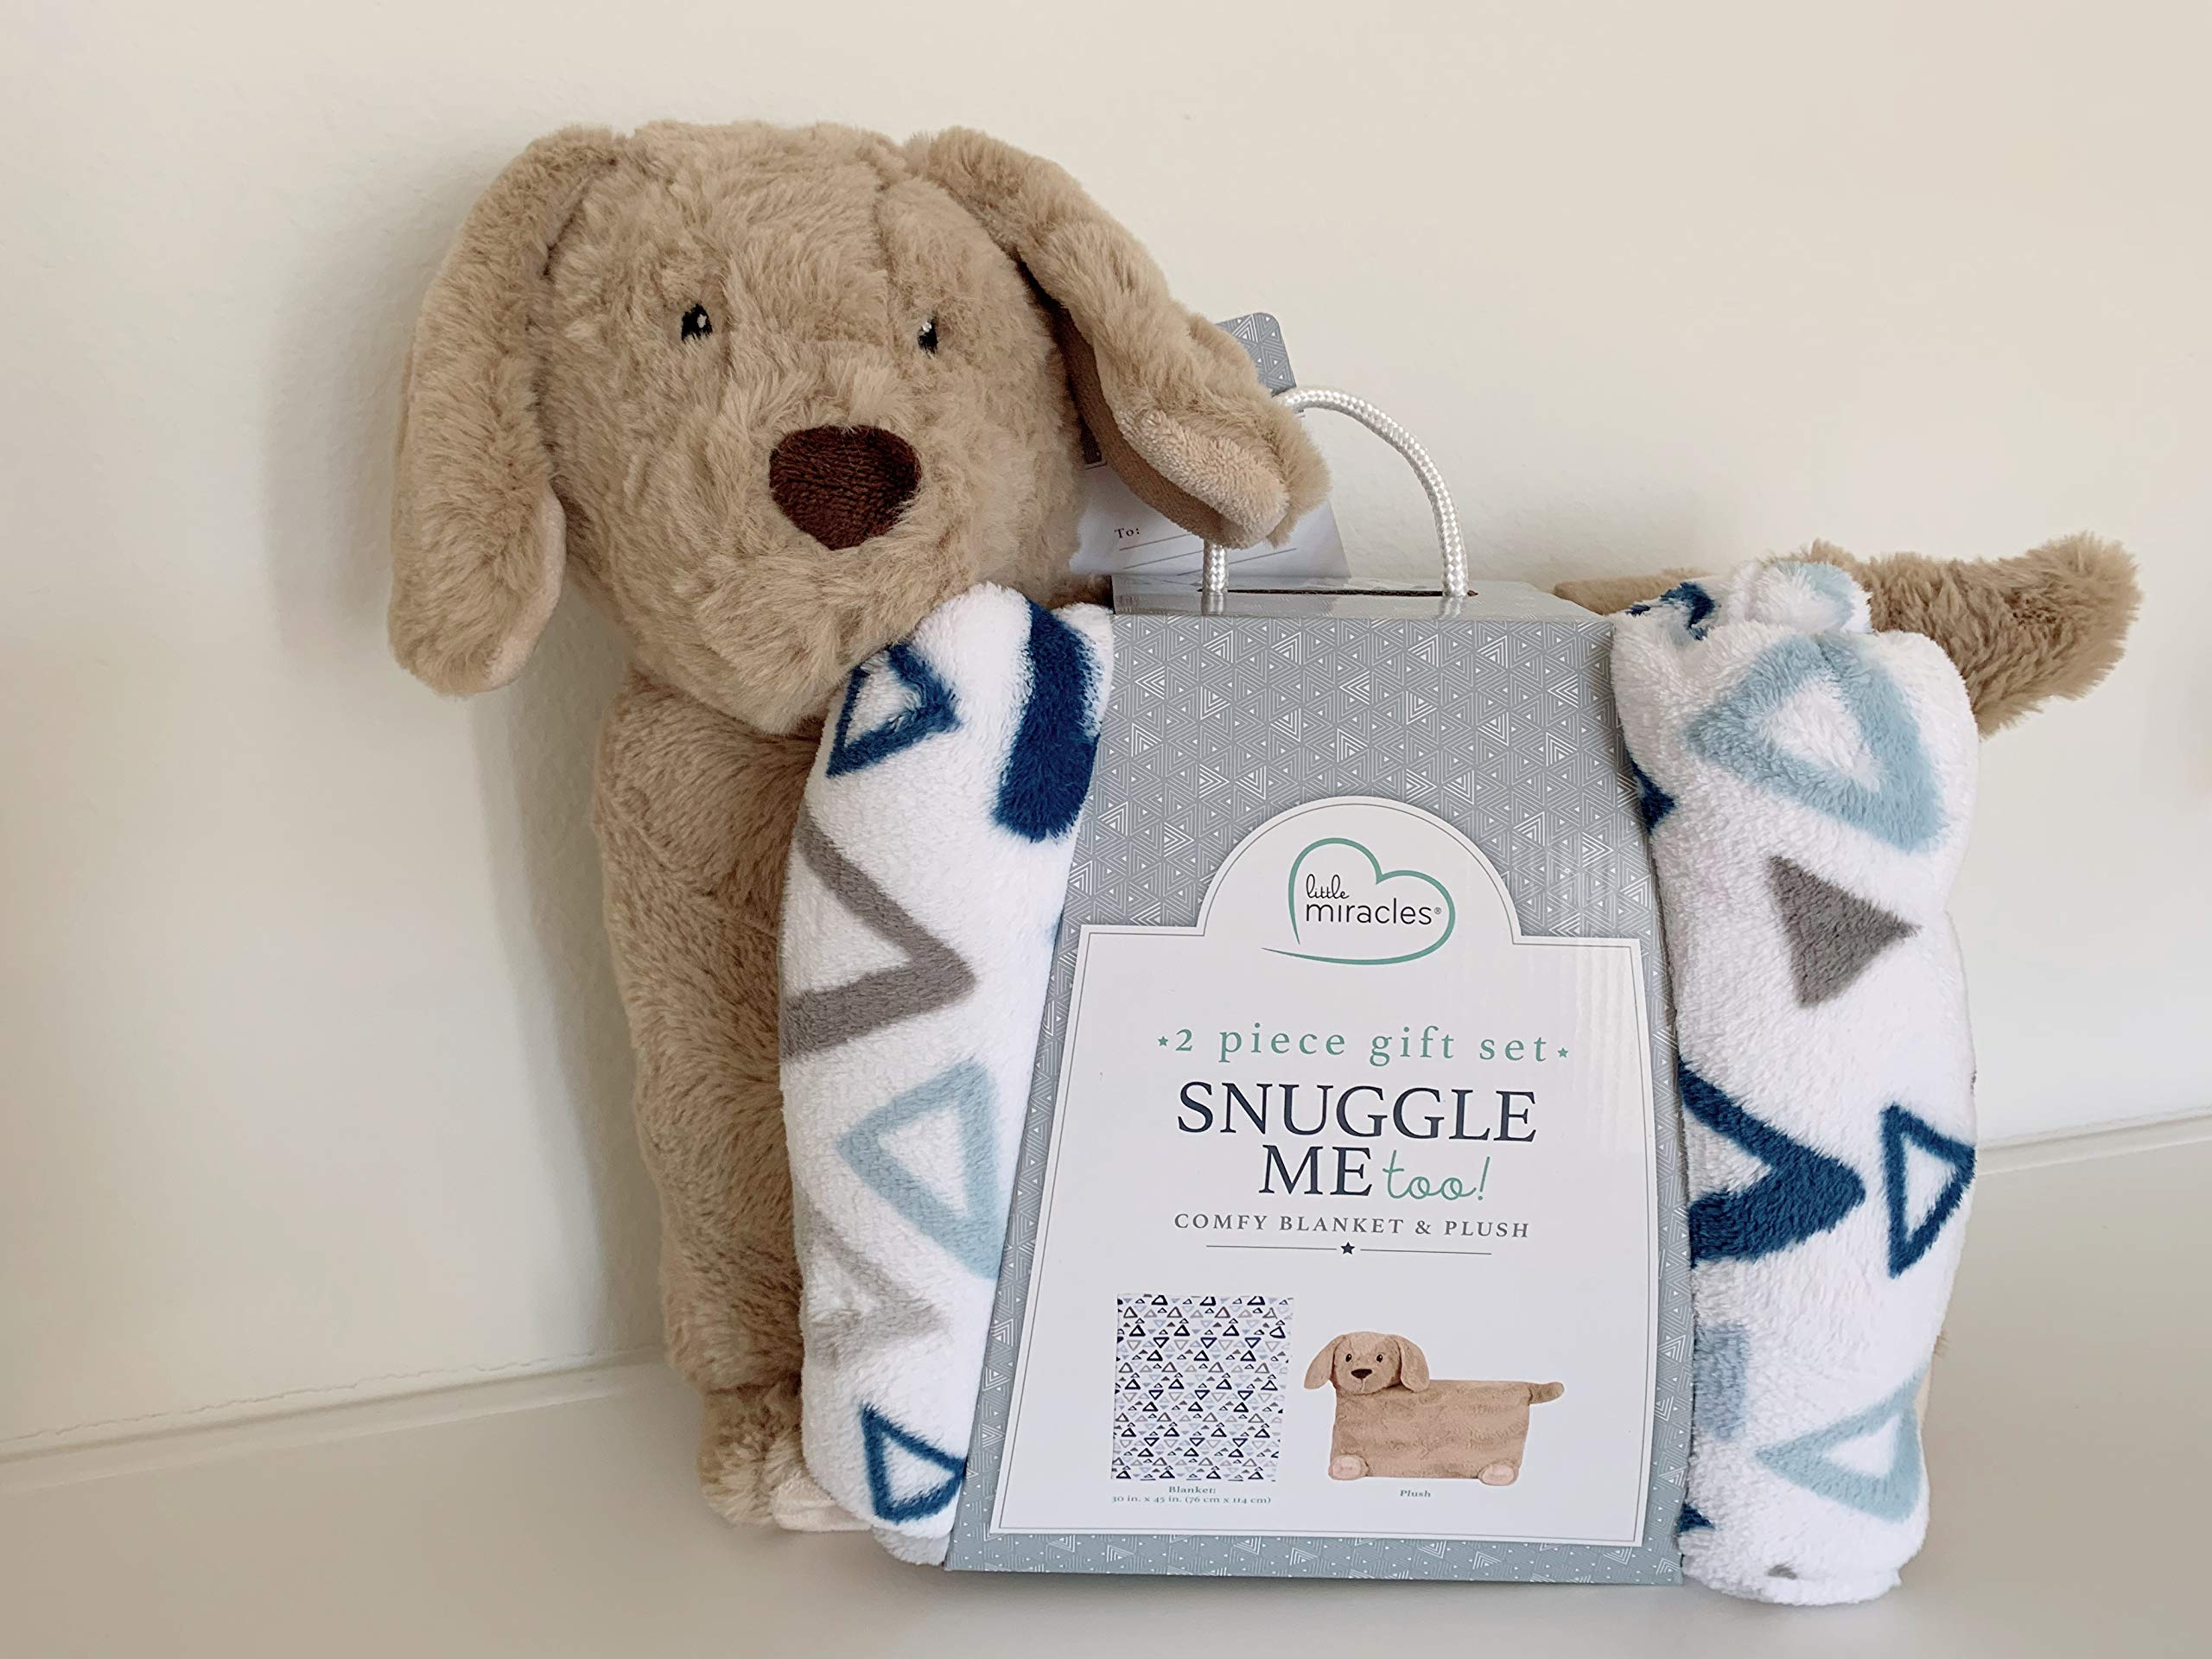 Little Miracles Snuggle Me Too! 2 -Piece Comfy Blanket and Plush Gift Set- Dog